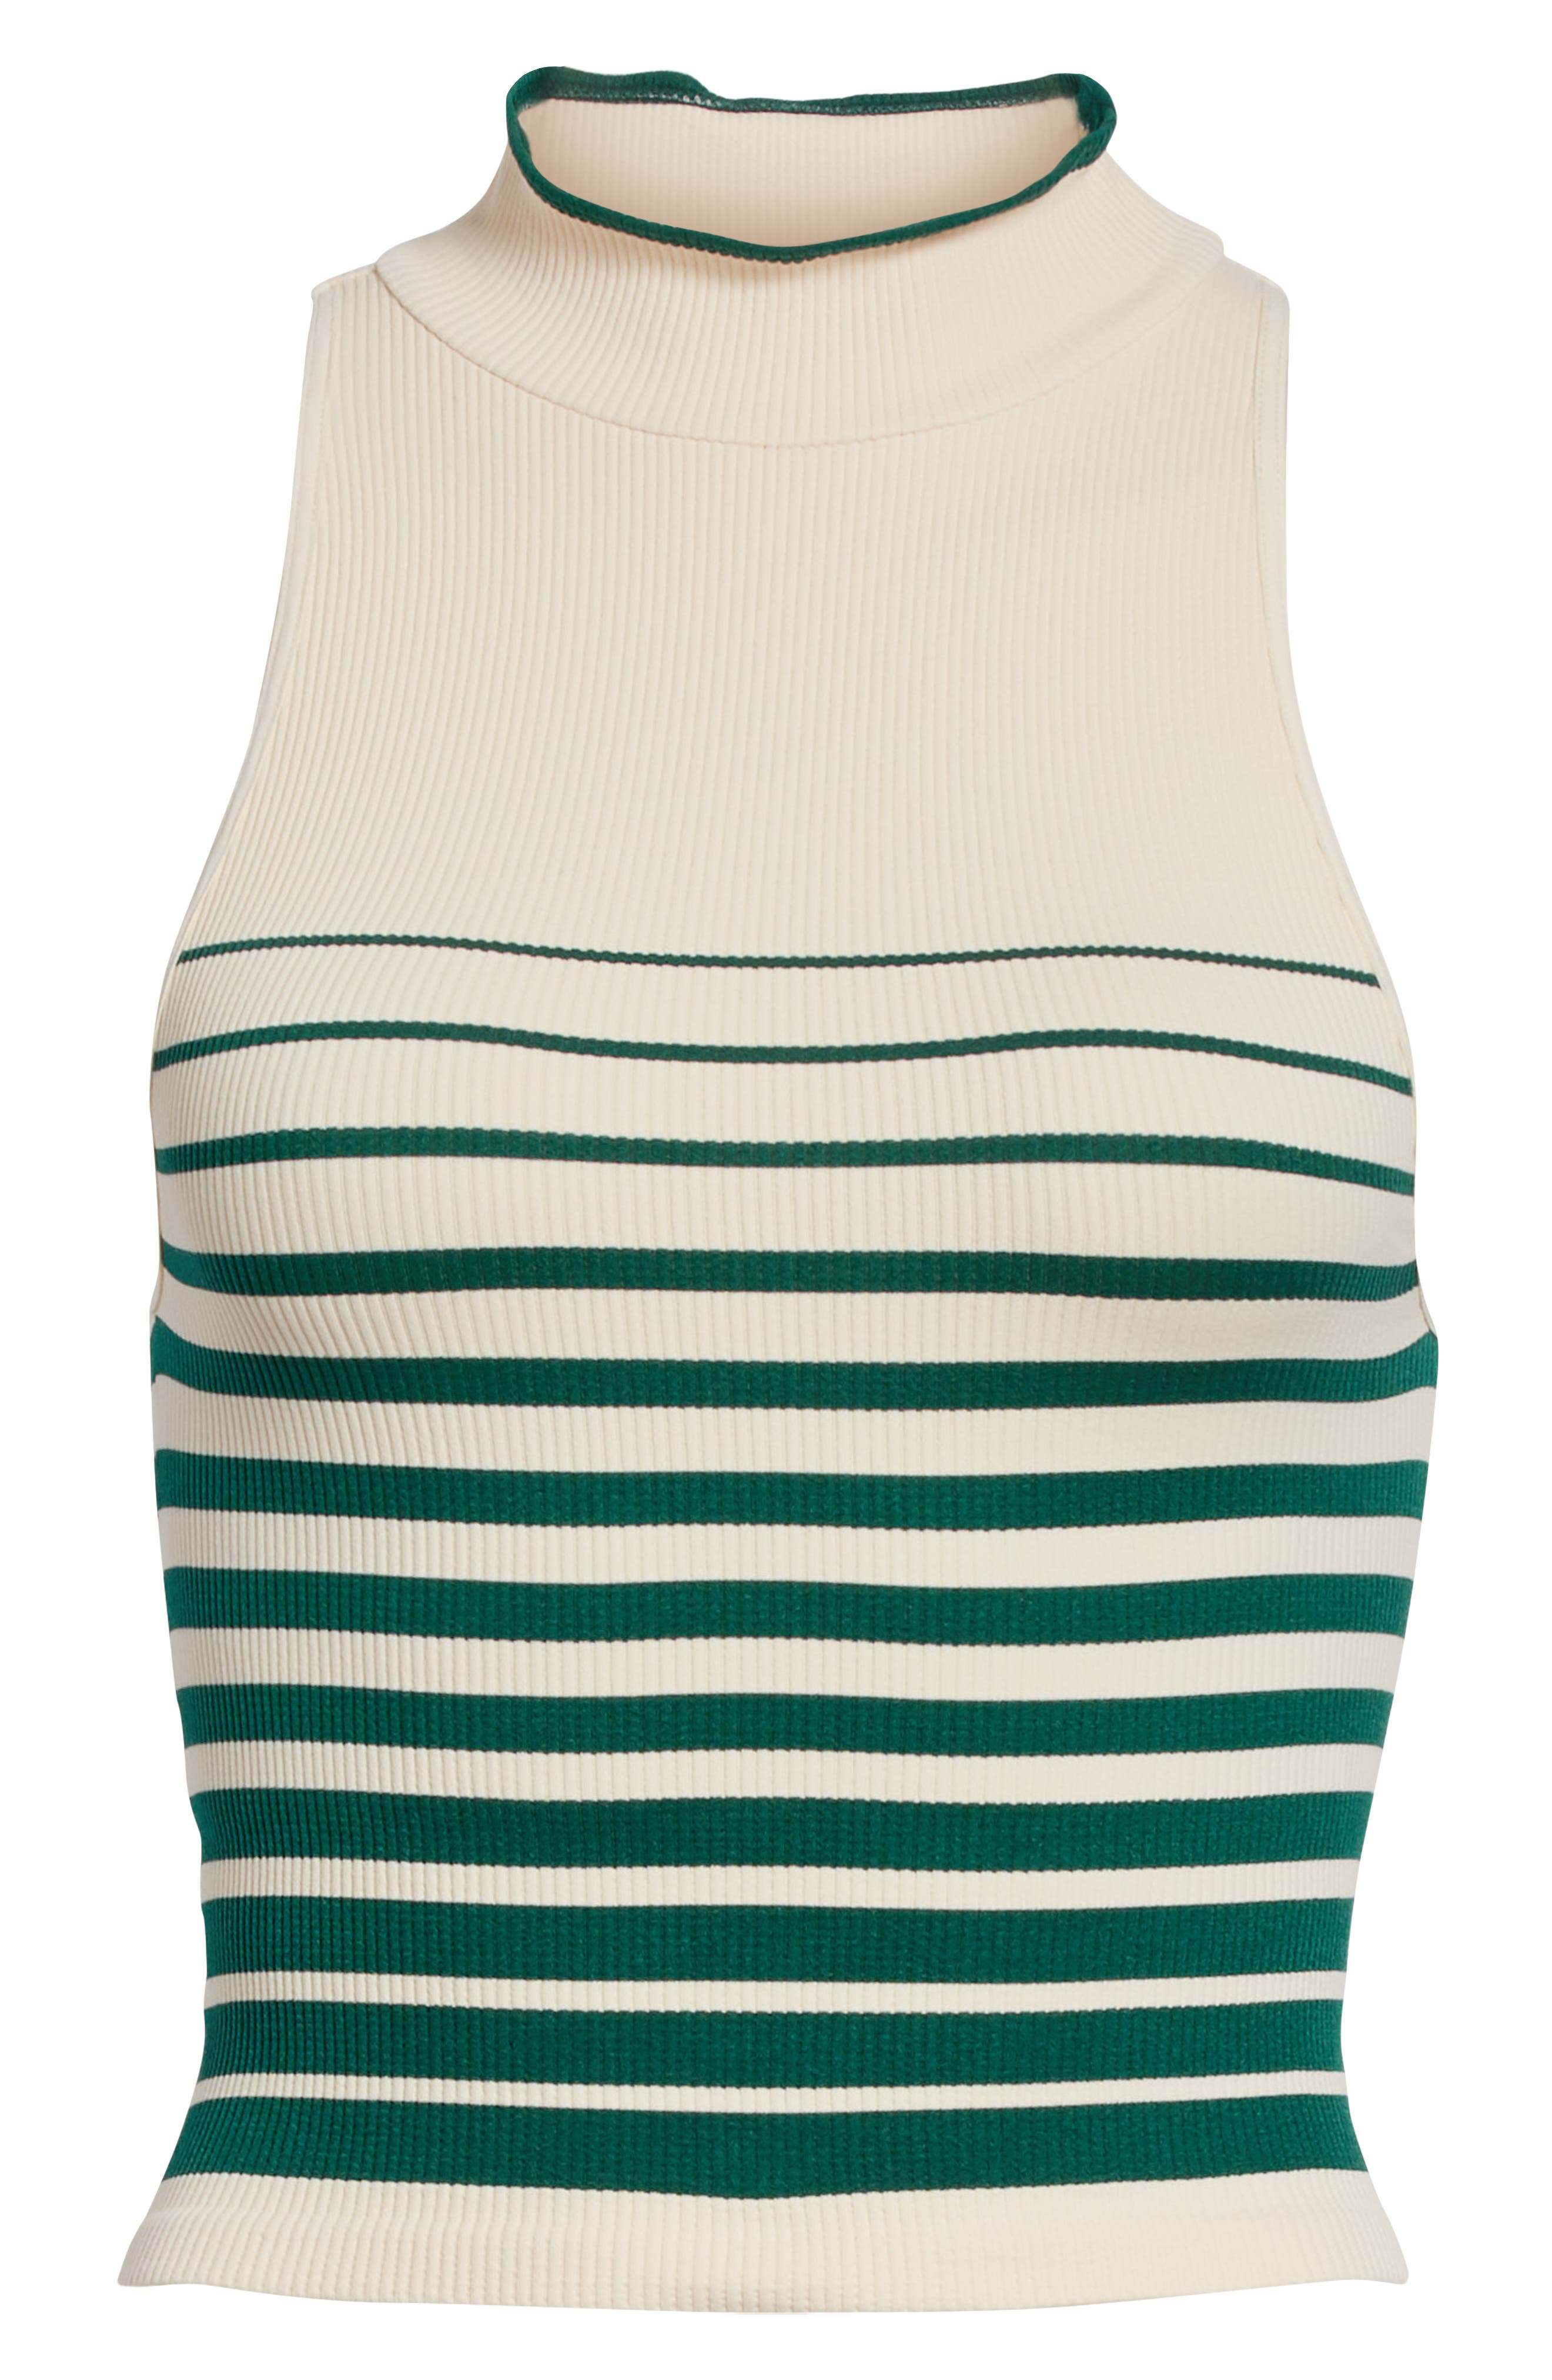 High Five Crop Tank,                             Alternate thumbnail 6, color,                             Ivory